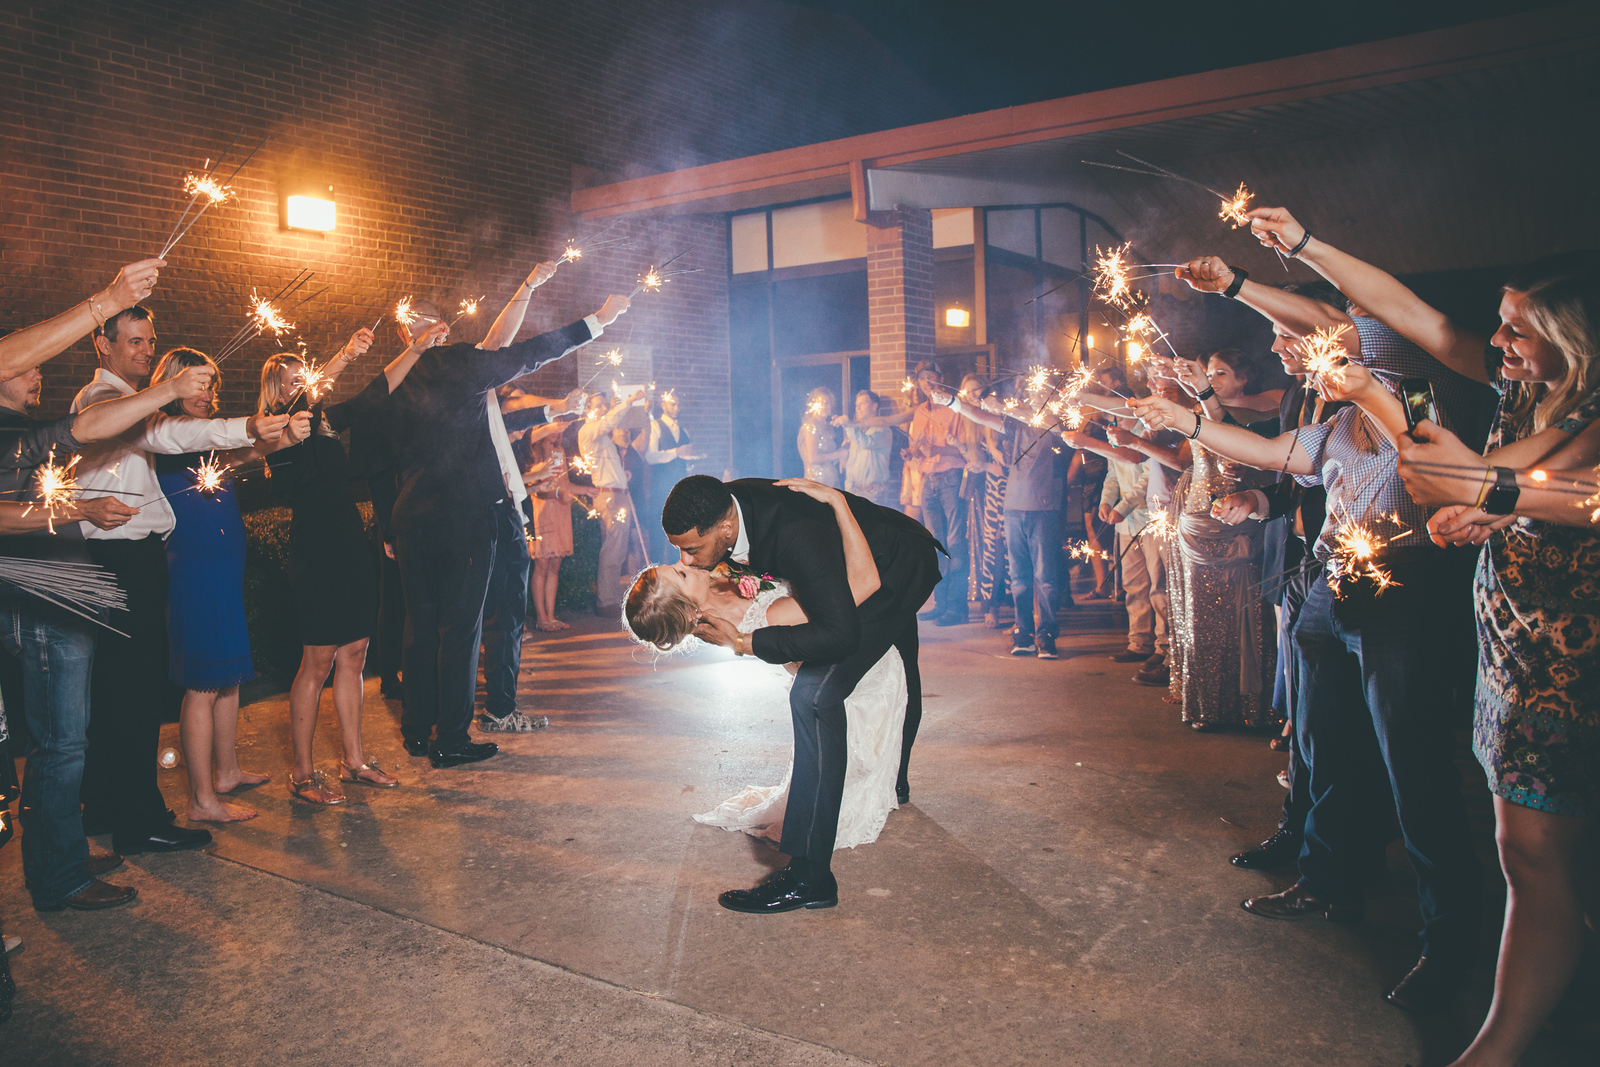 a groom dipping his newlywed wife while their wedding guest stand around them with sparklers during their grand exit